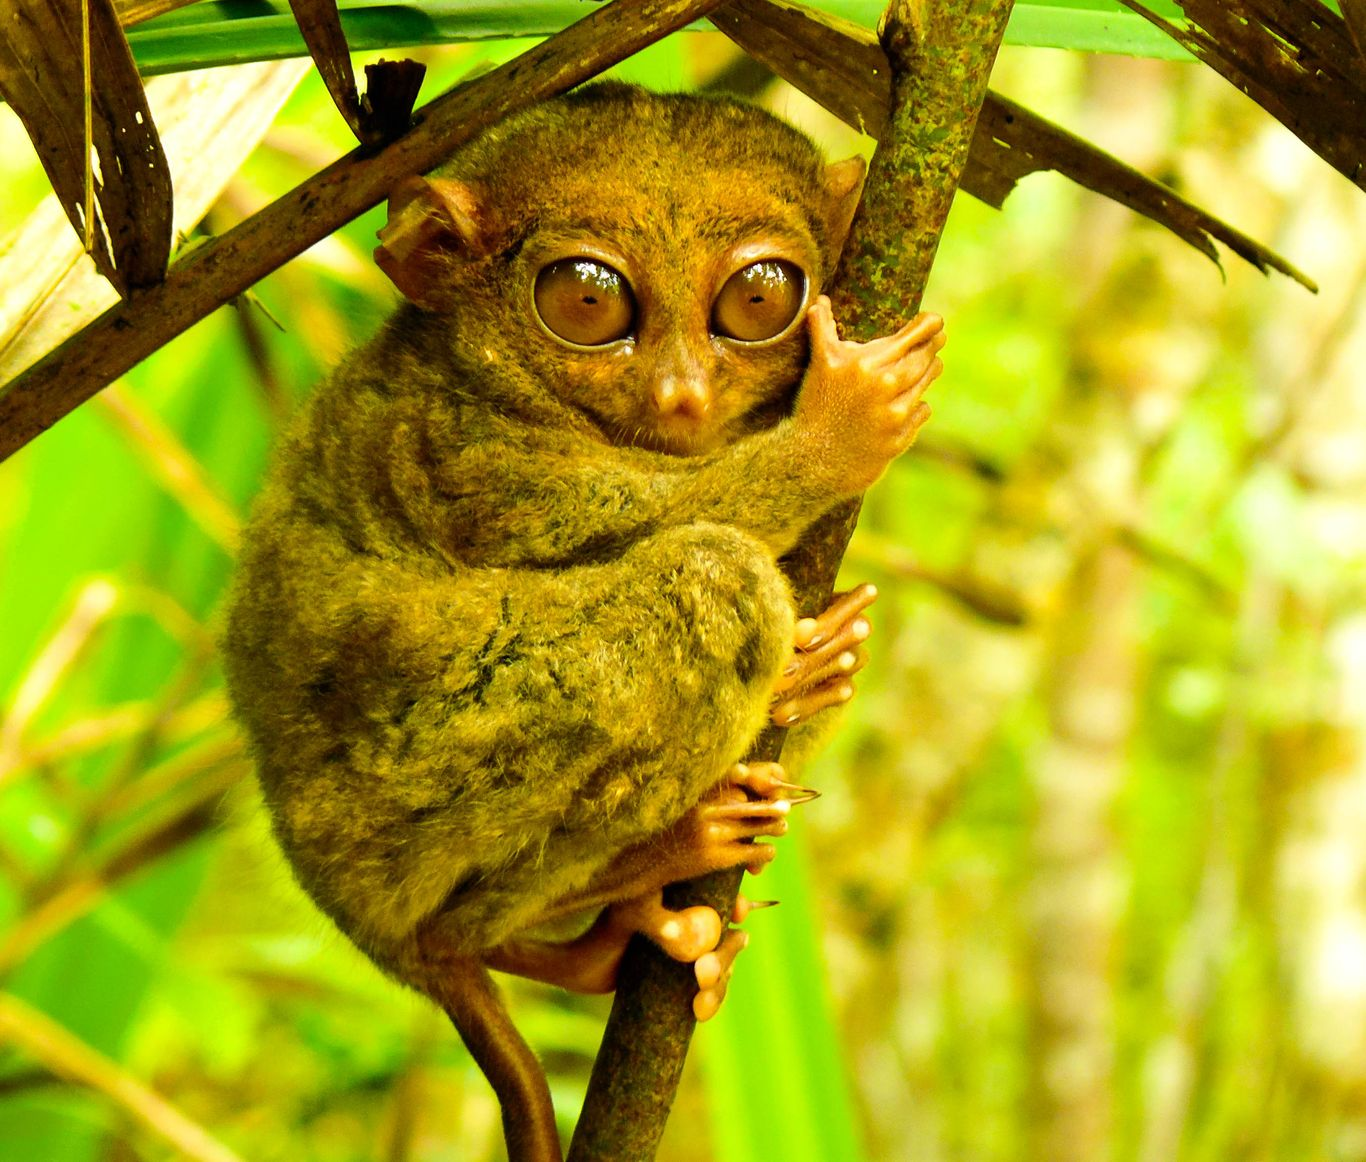 A Philippine tarsier clinging to a thin branch